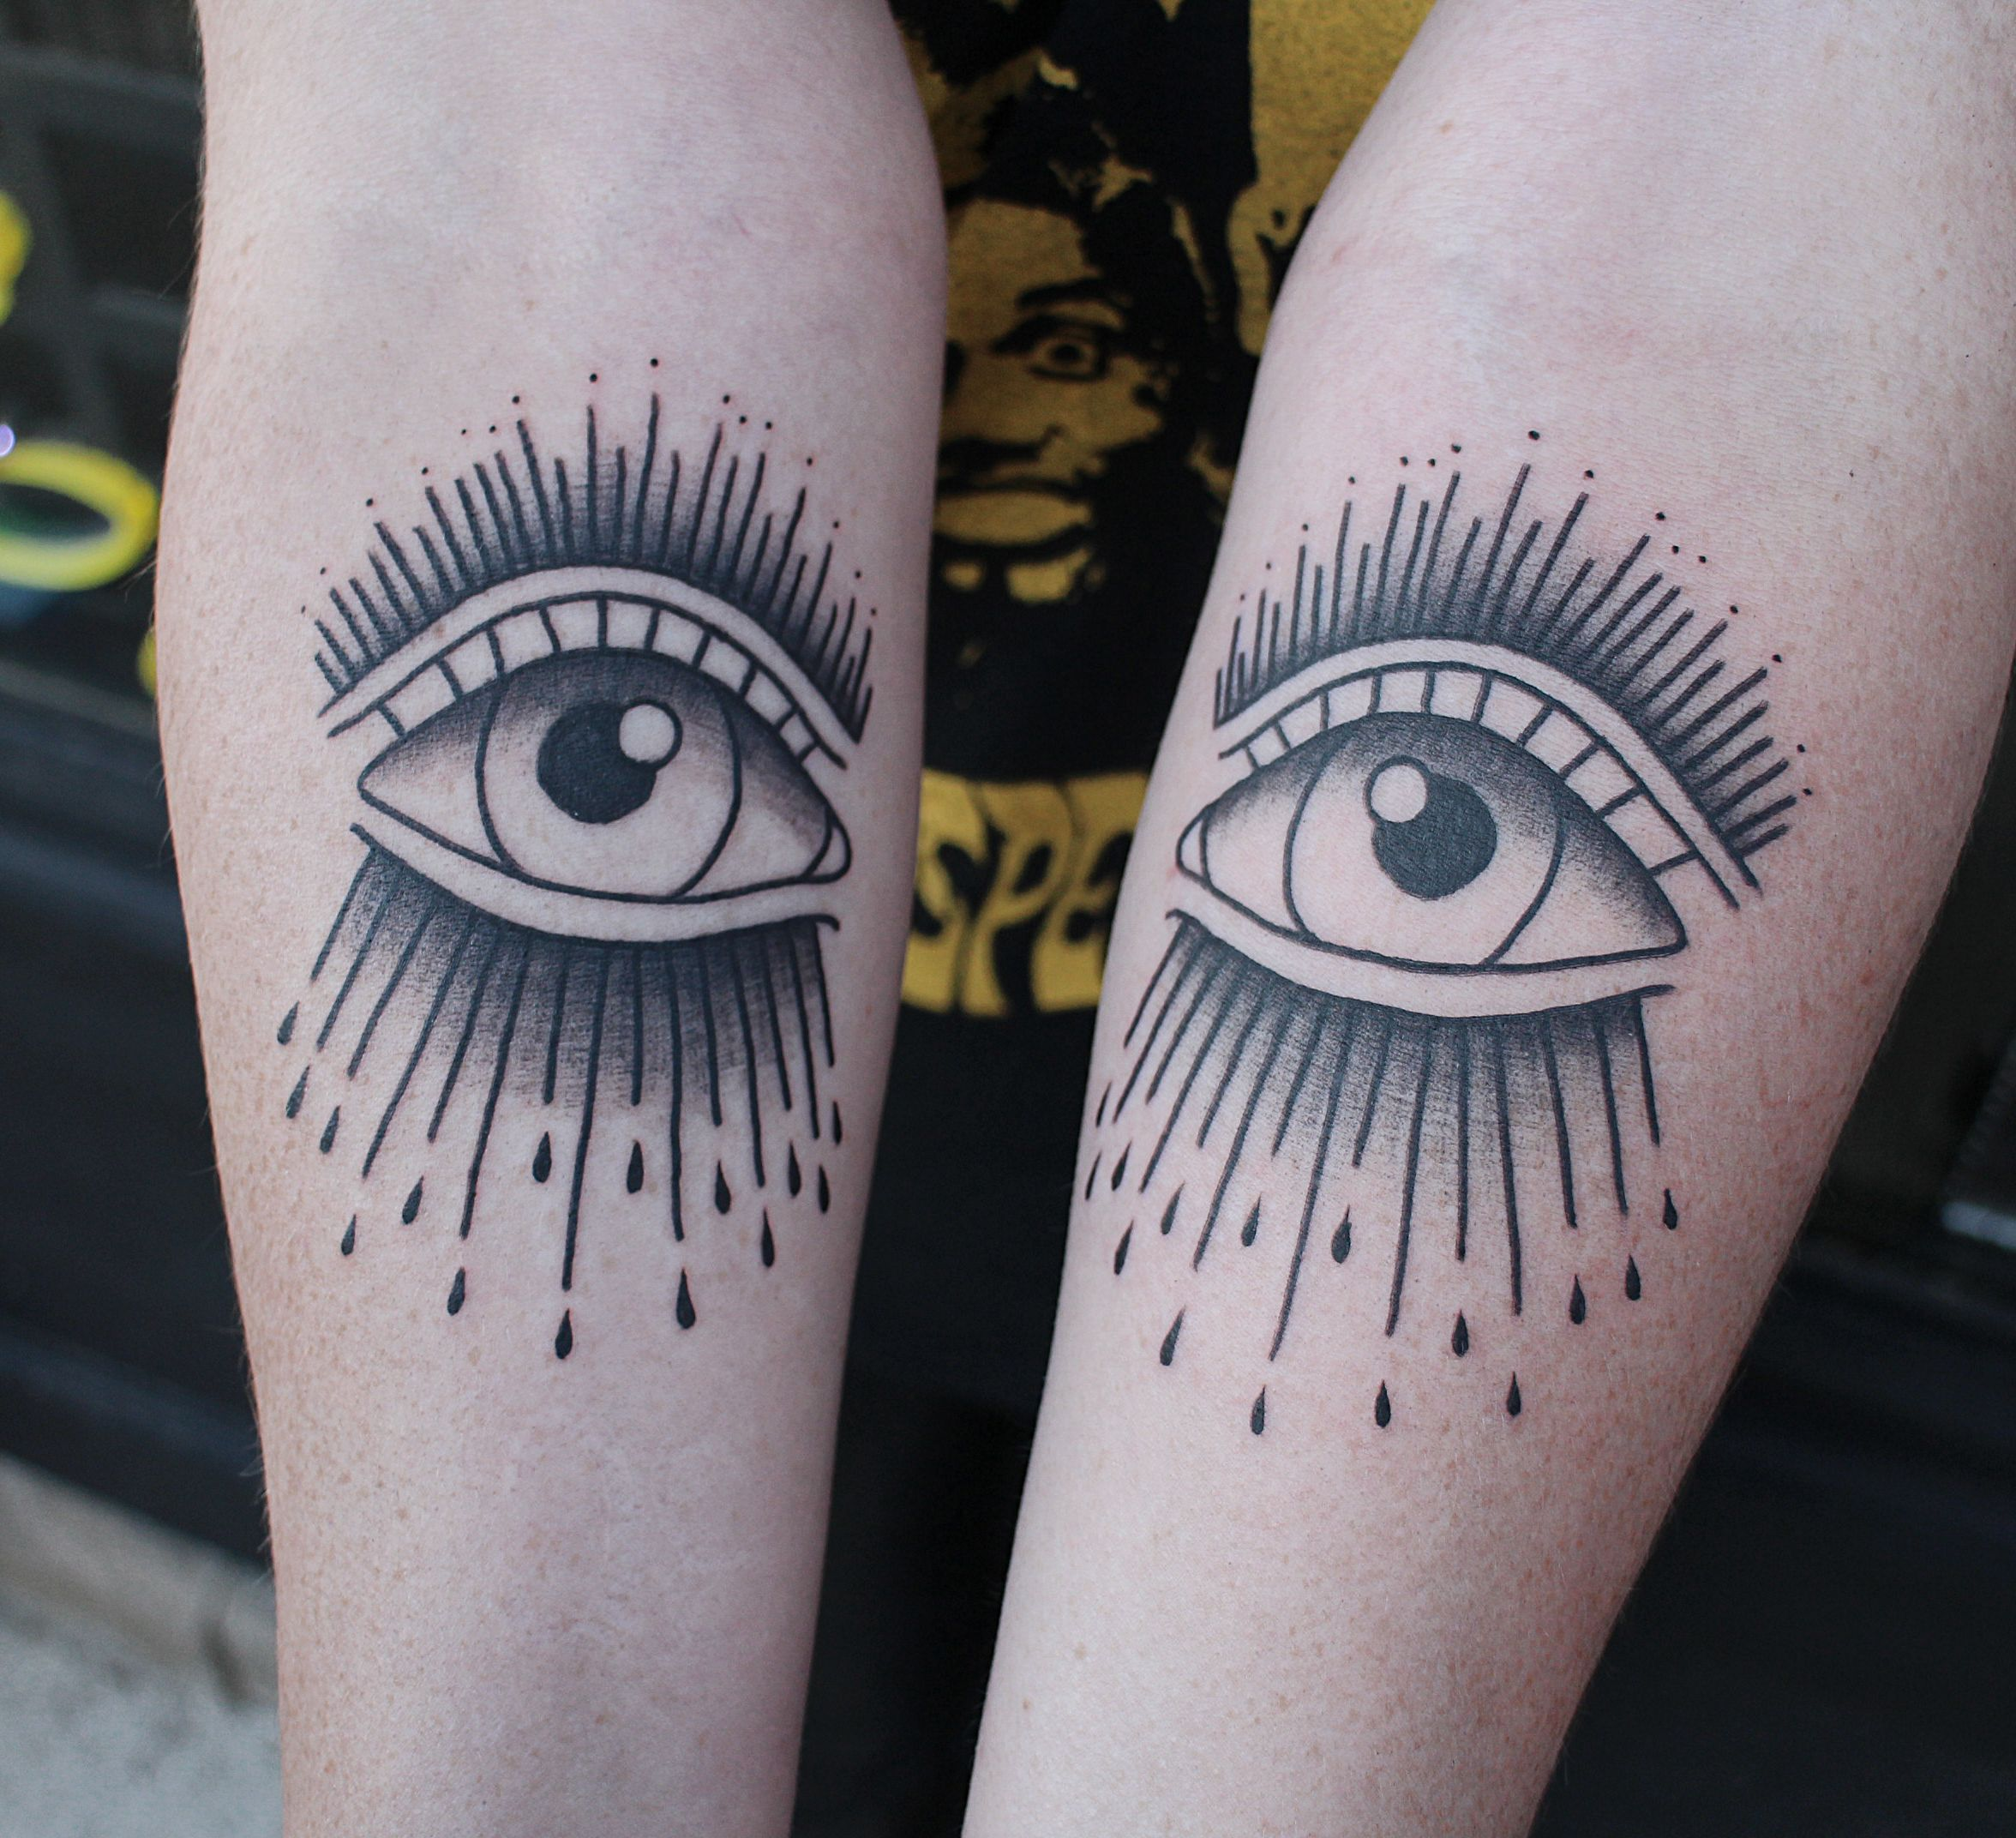 Eyes on Forearm by Jacqueline May (me) at Tattoo People